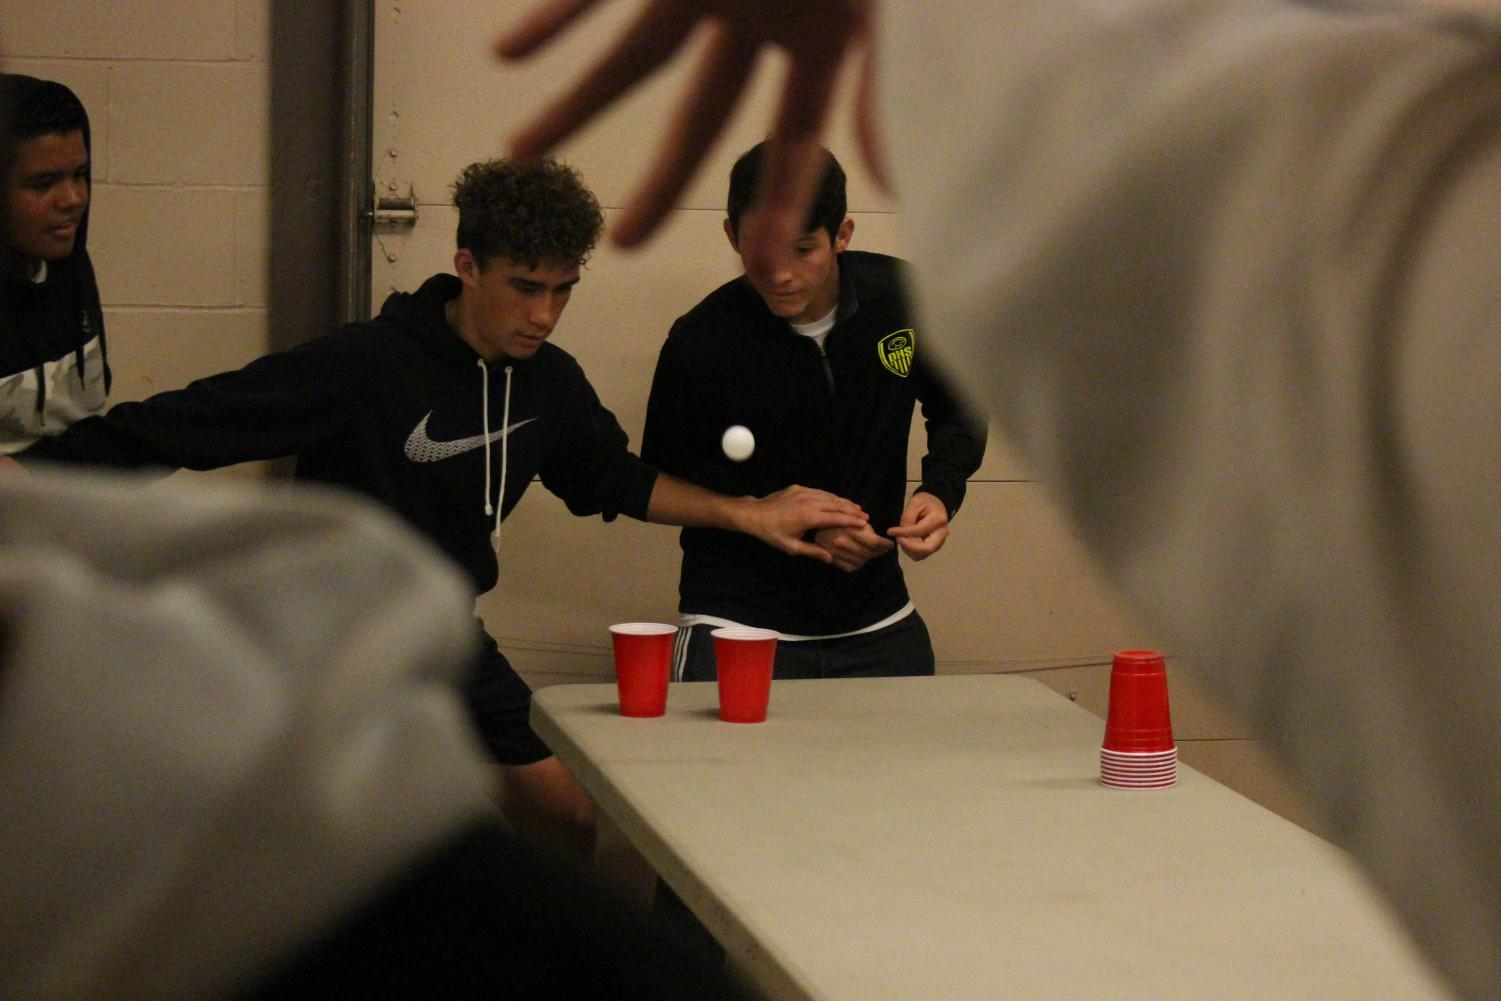 Scott Simmmons and Dylan Hildreth watch as a ping pong ball is thrown during the Derby soccer team dinner.